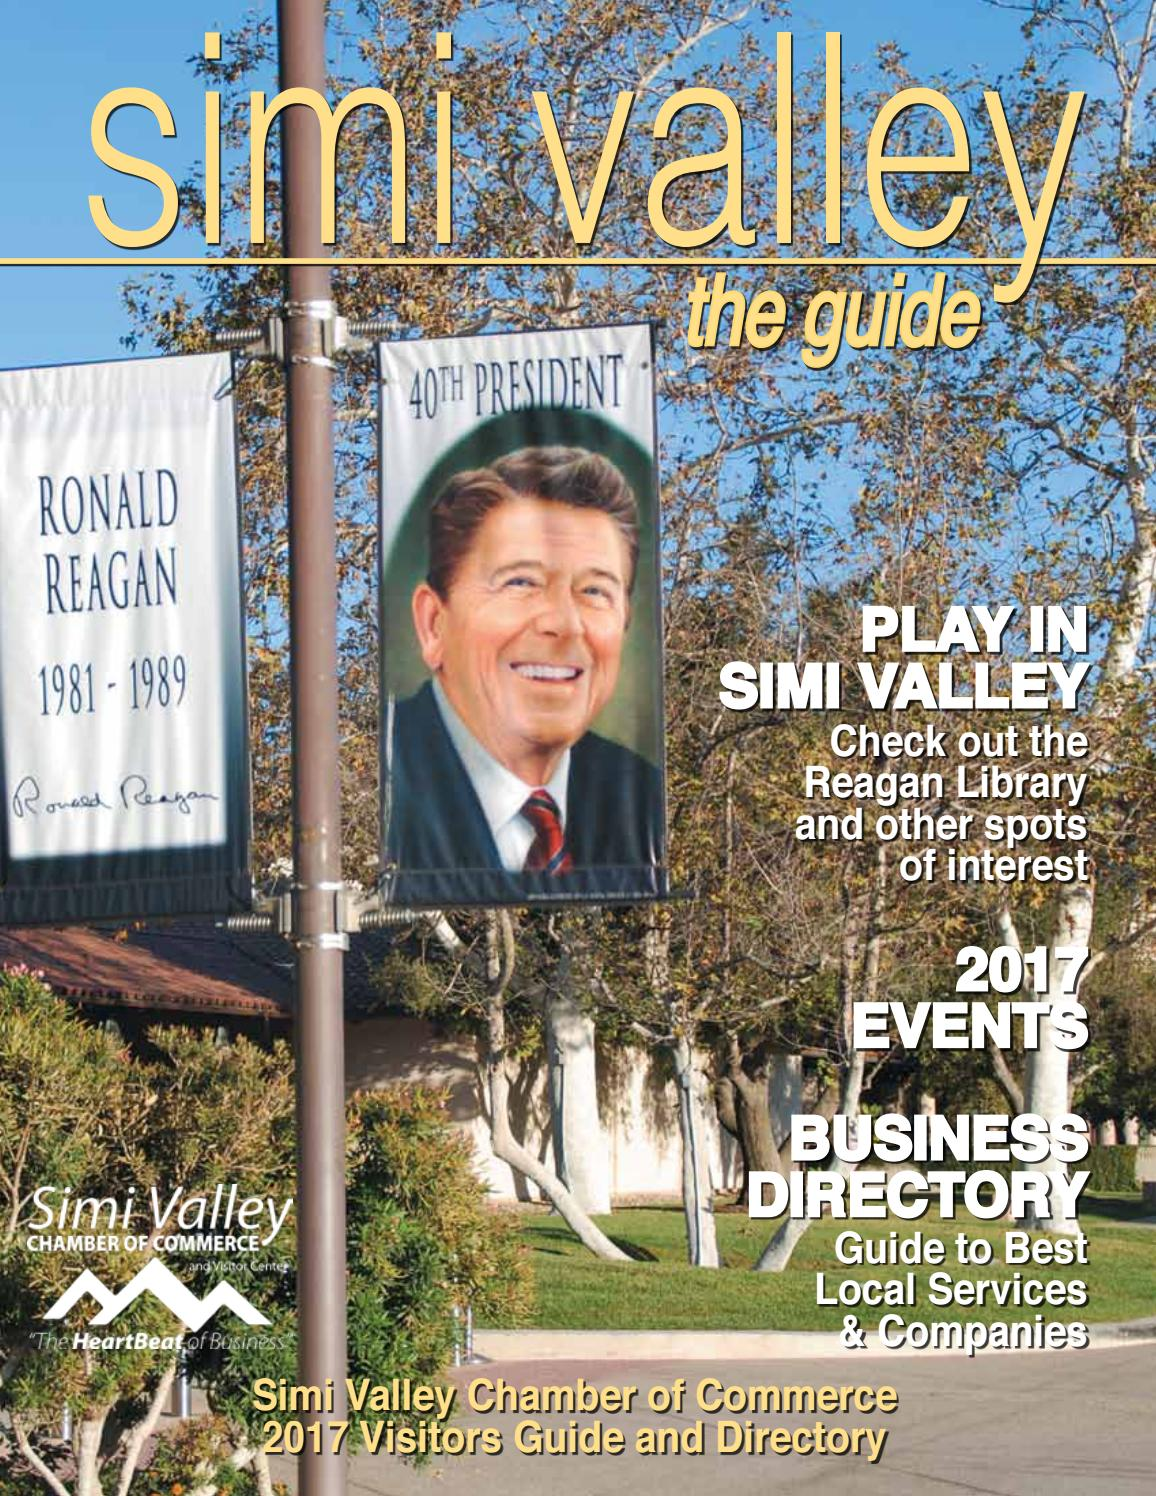 Simi Valley Chamber of Commerce - The Guide 2017 by svcc2468